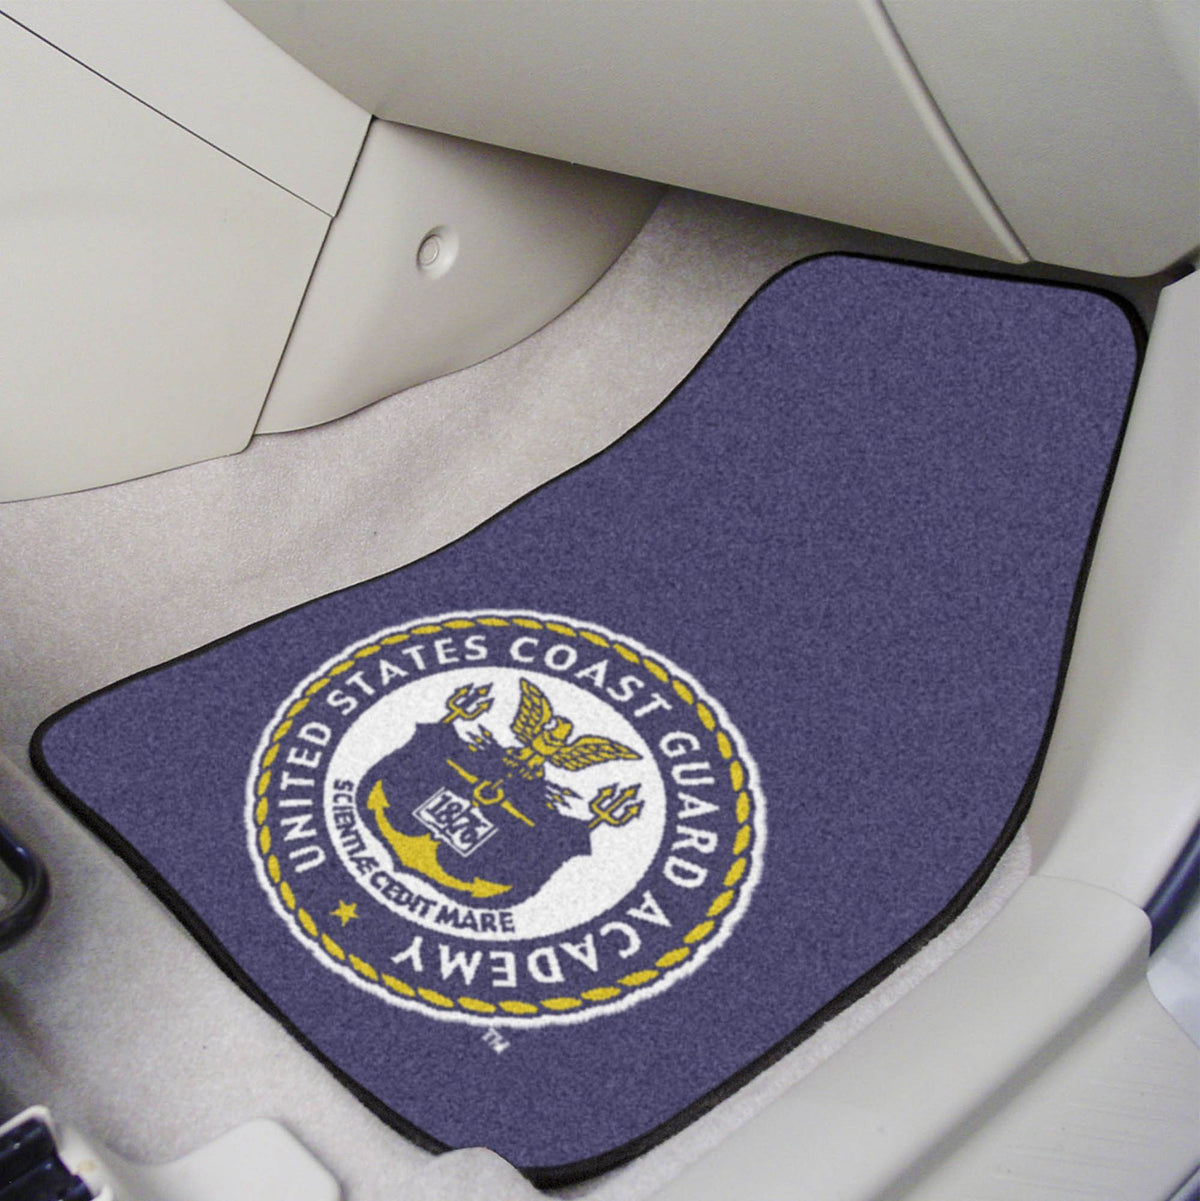 Collegiate - Carpet Car Mat, 2-Piece Set: T - Z Collegiate Car Mat, Front Car Mats, 2-pc Carpet Car Mat Set, Collegiate, Auto Fan Mats U.S. Coast Guard Academy 2